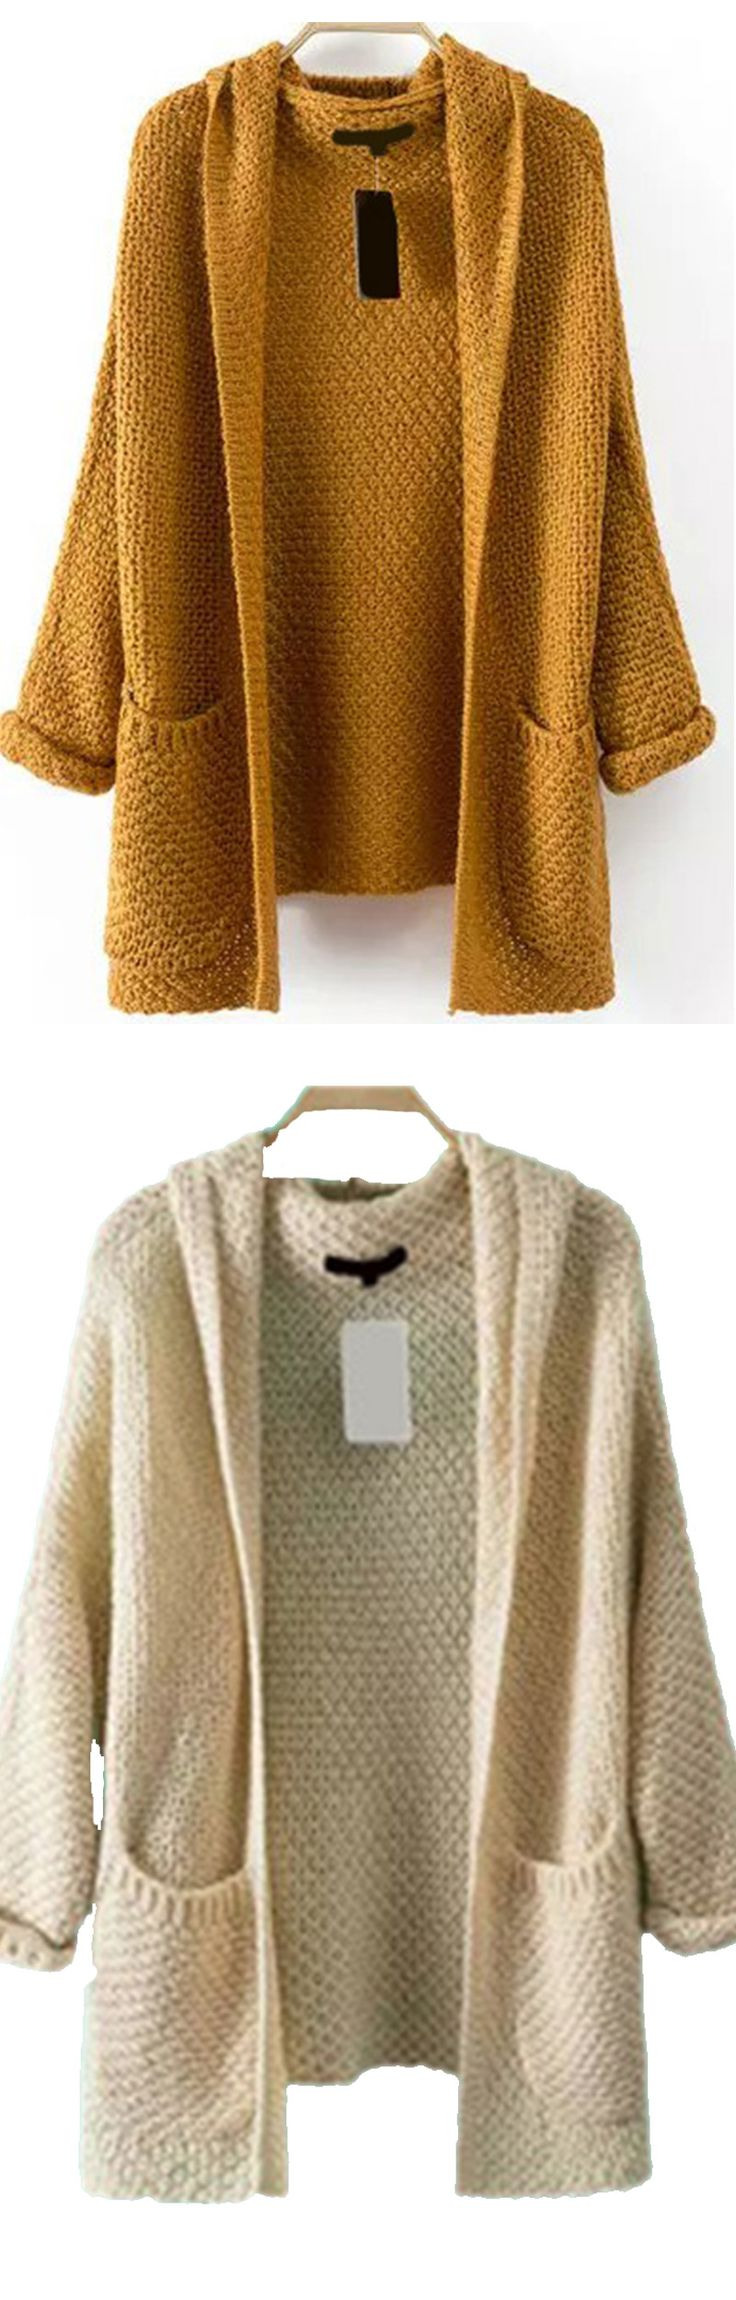 Best 25+ Sweater cardigan ideas on Pinterest | Crochet cardigan ...